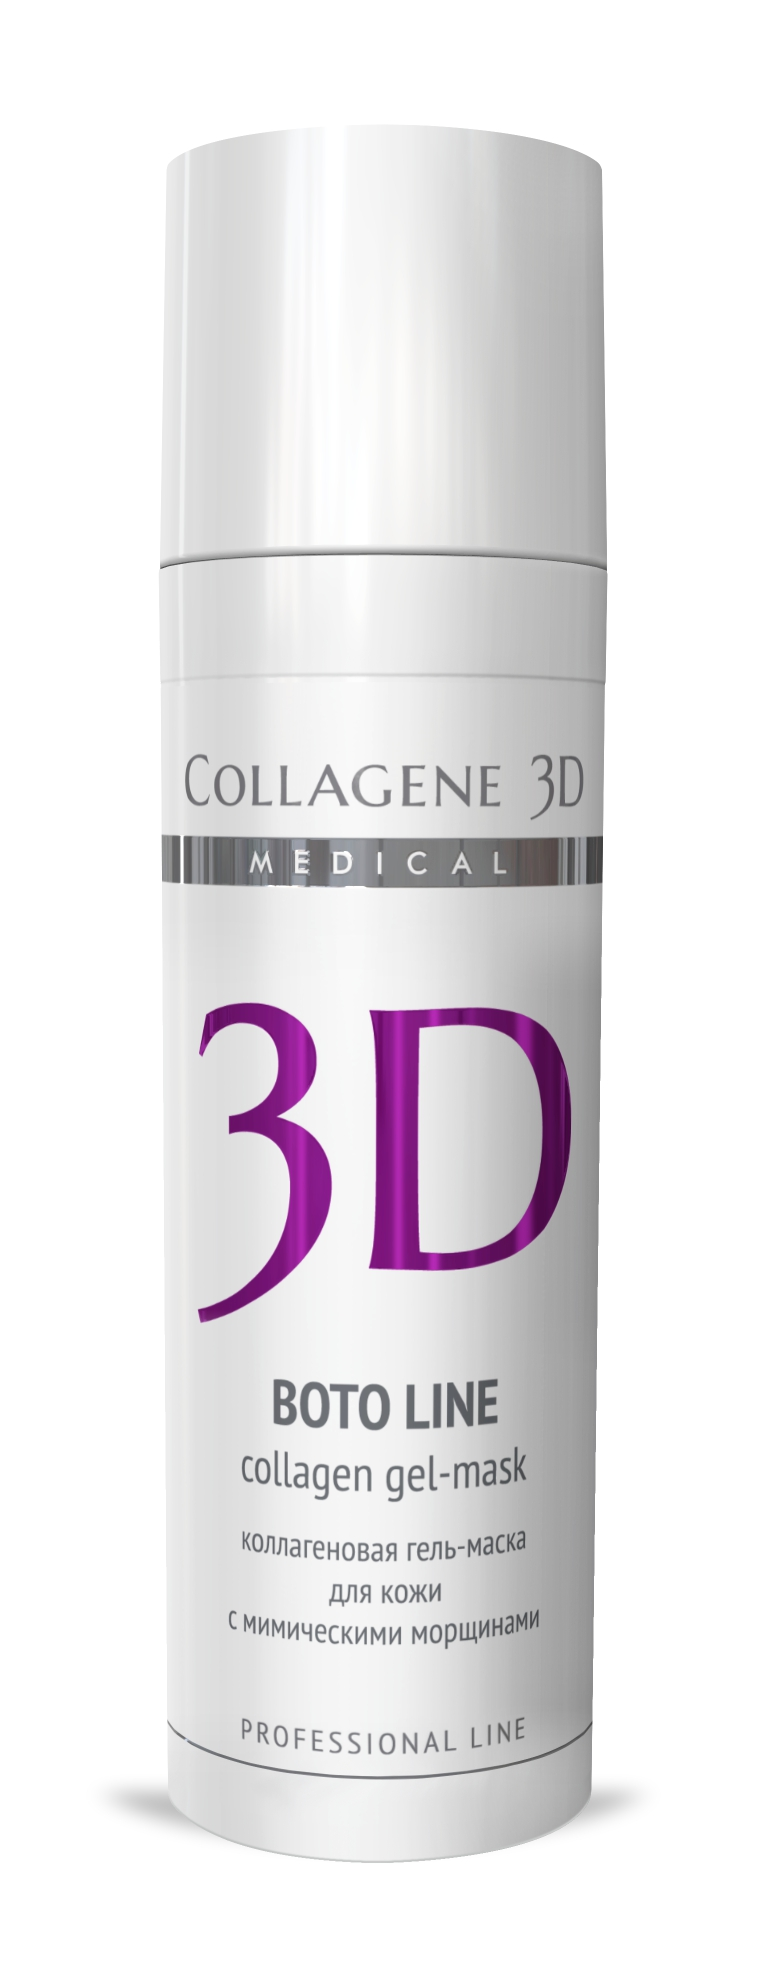 MEDICAL COLLAGENE 3D Гель-маска коллагеновая с комплексом Syn®-ake / Boto Line 30 мл проф. гель medical collagene 3d easy peel glicolic peeling 5